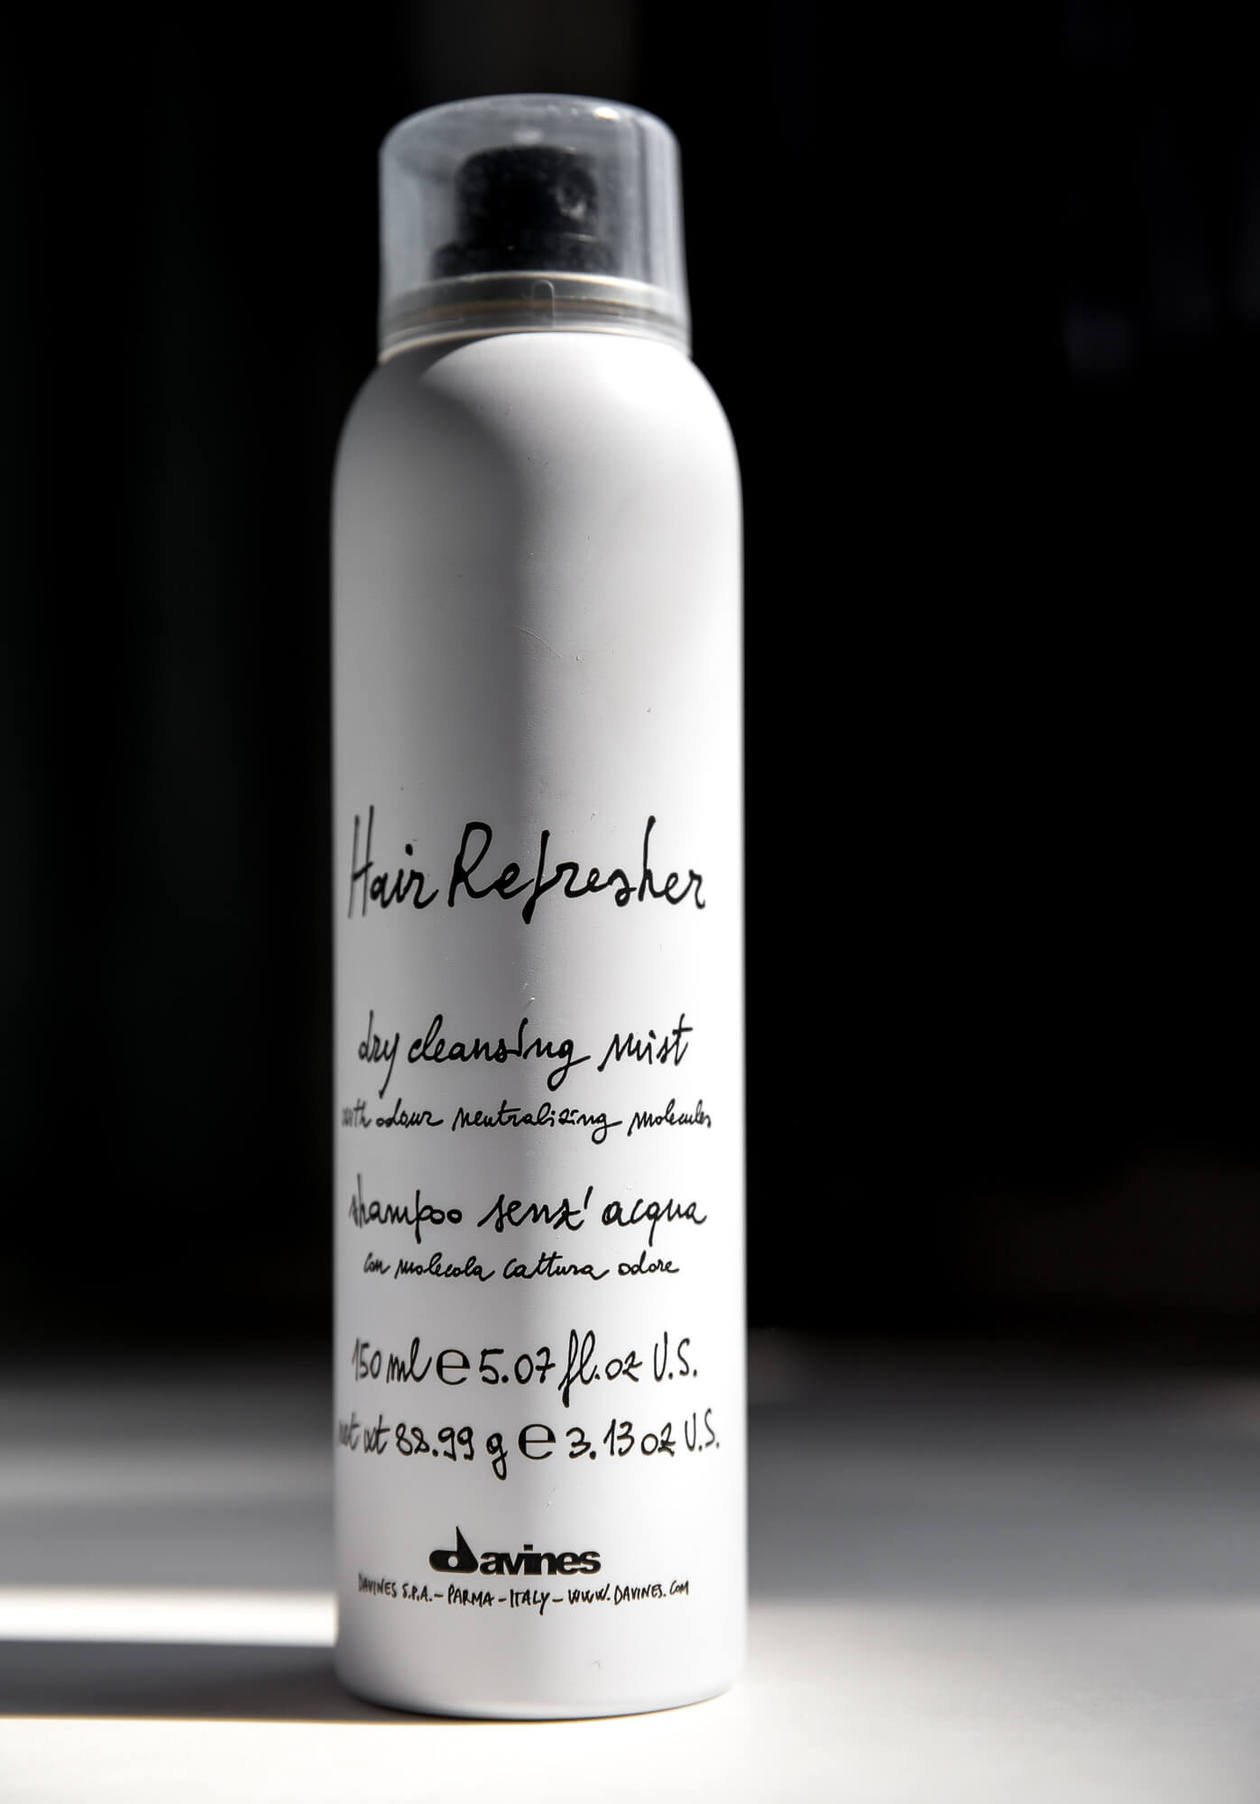 Davines Hair Refresher is one of the best dry shampoos to effectively eliminates oil, leaving your hair feeling clean with an added touch of volume at your roots. Keep reading for photos and a full review.